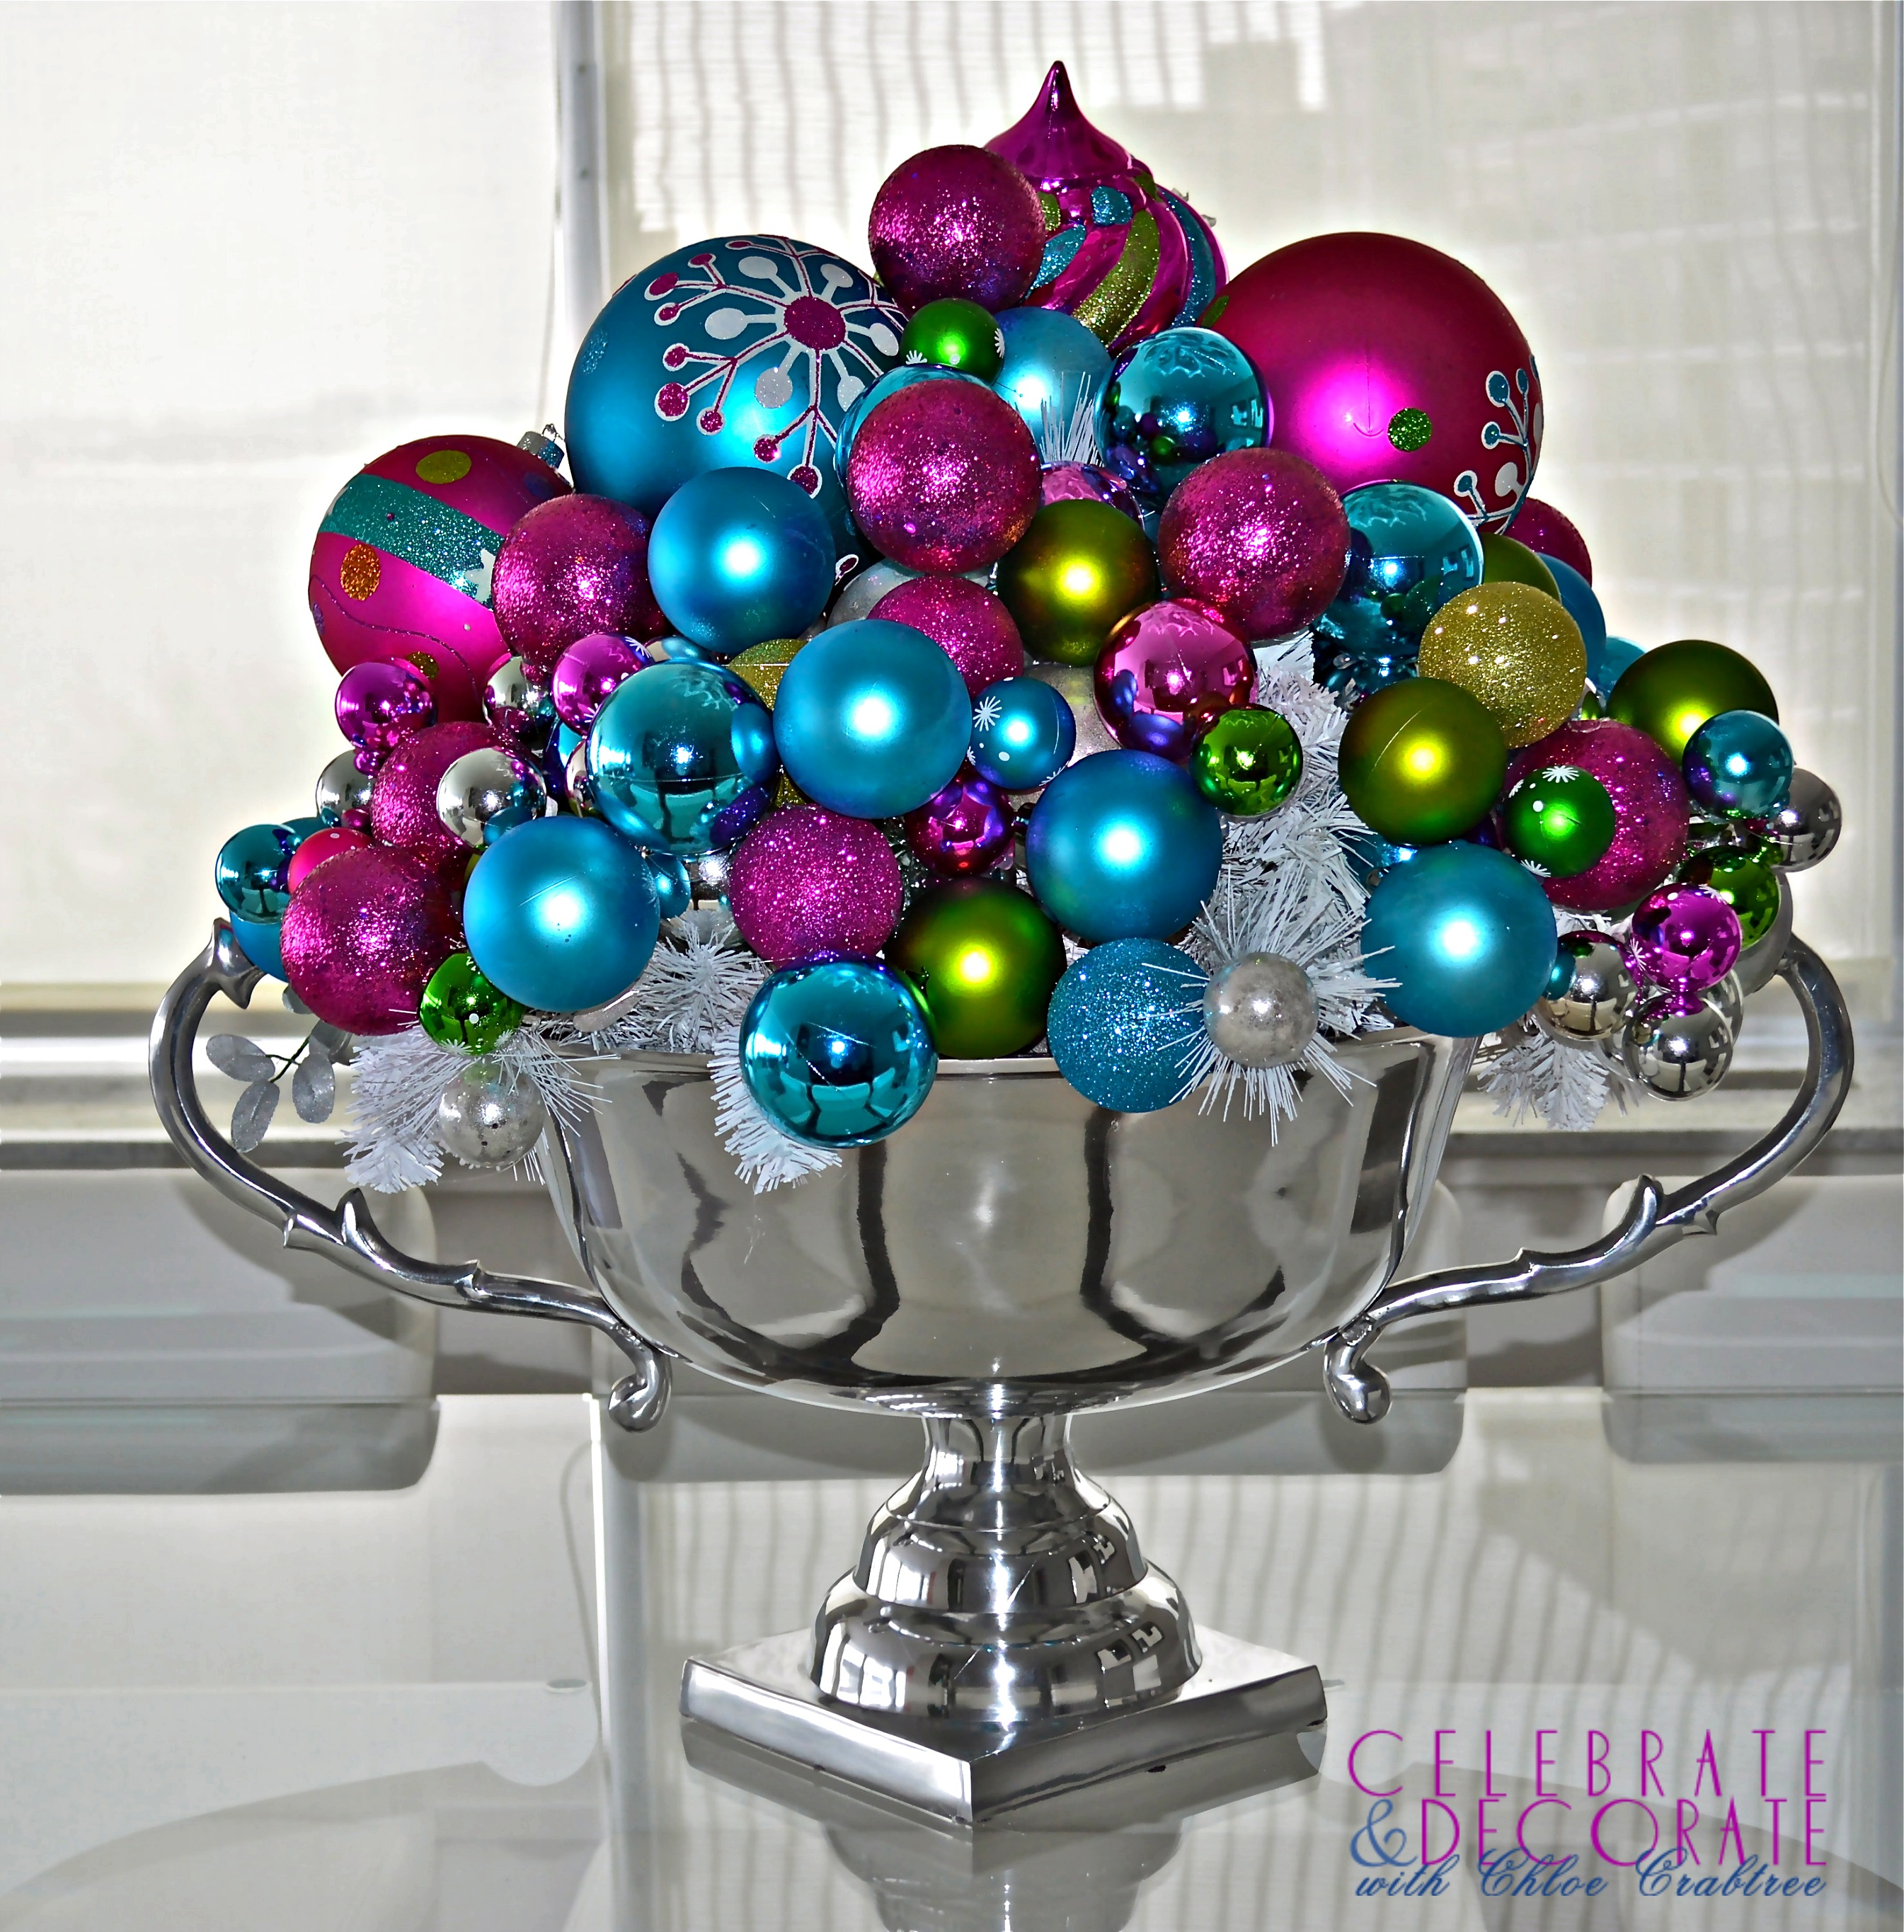 Christmas Decorations Holiday Decorations Decor: Bright And Modern Christmas Decor